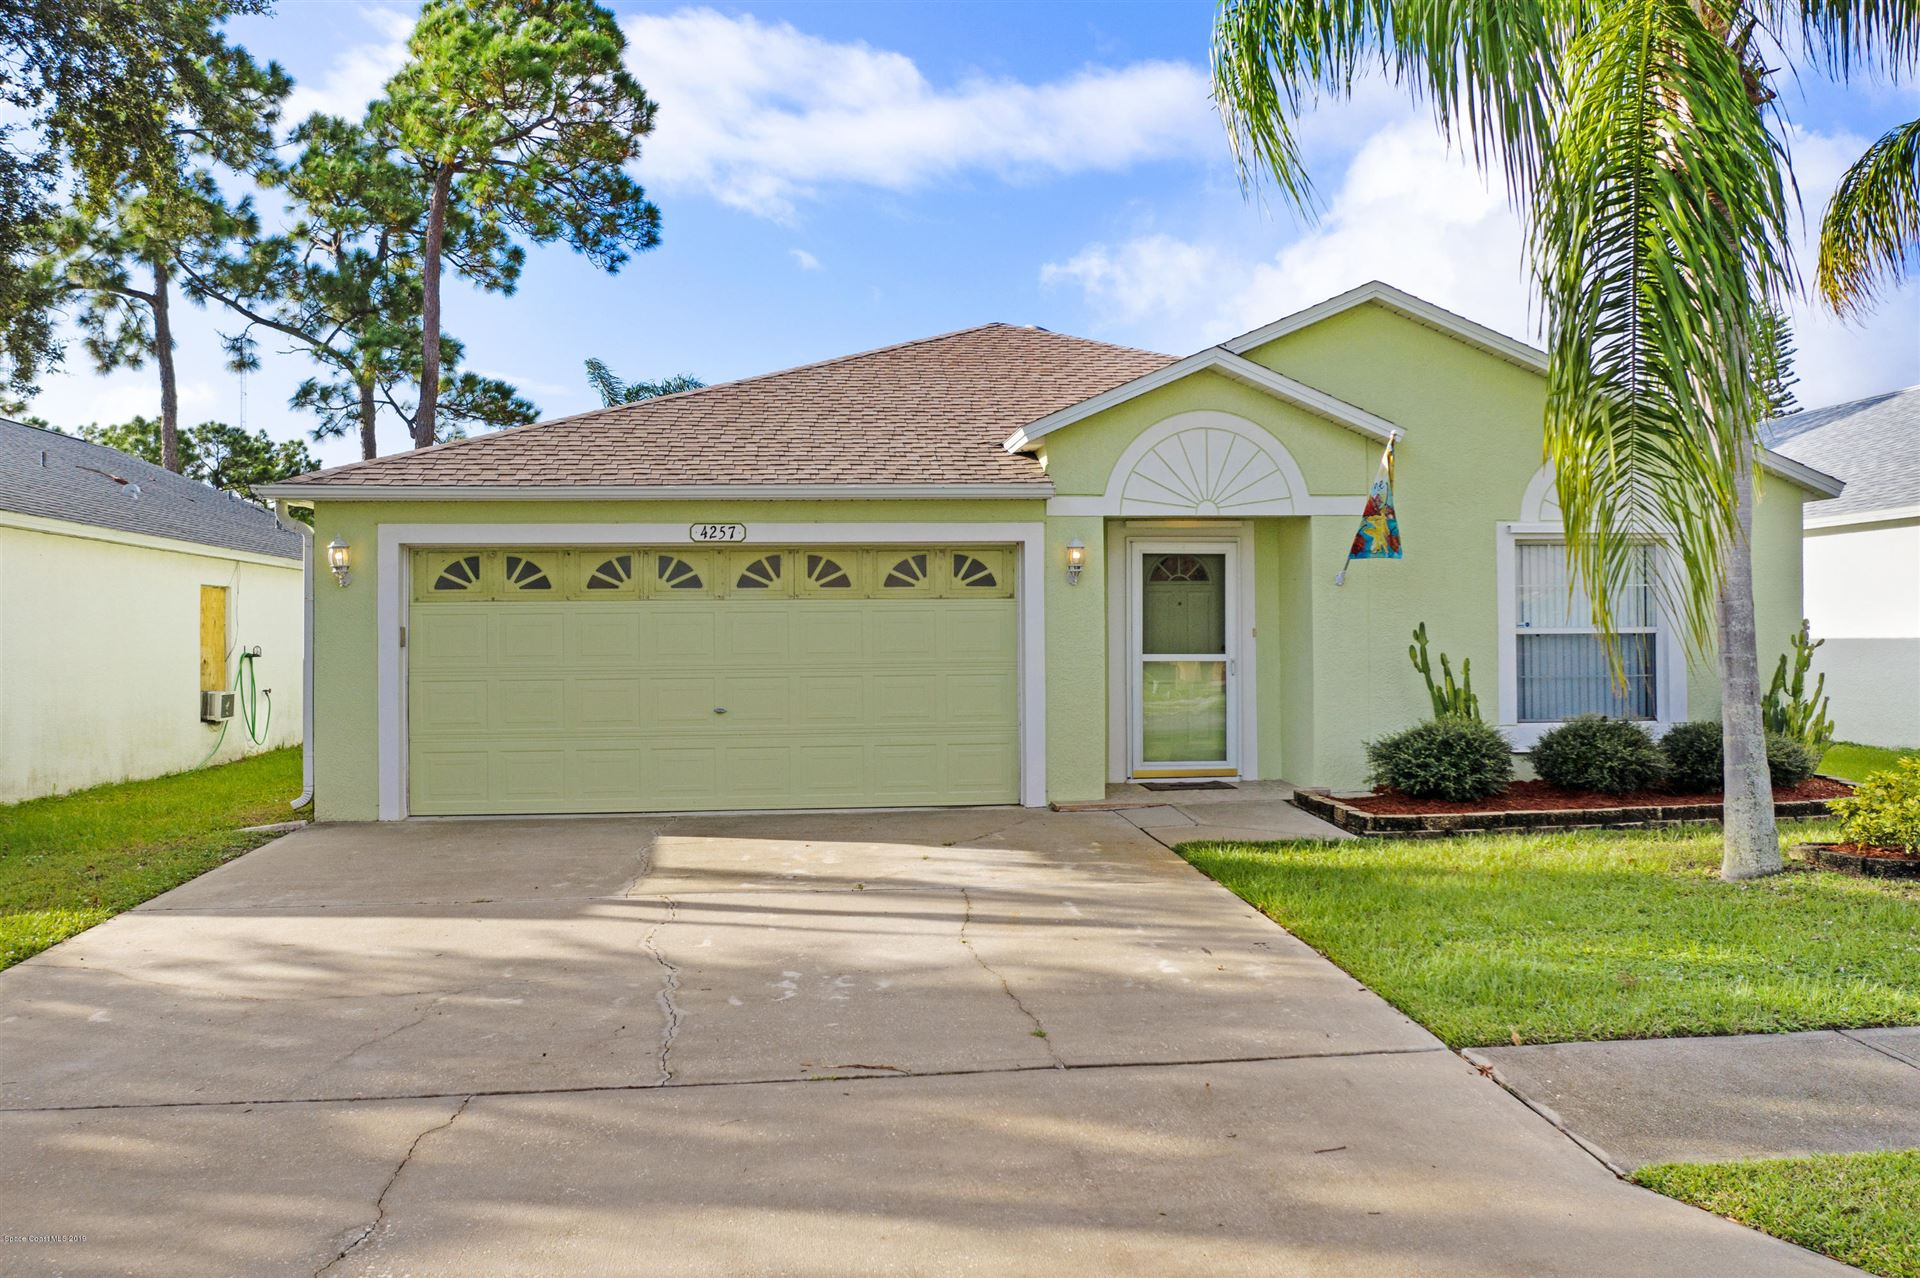 4257 Mount Carmel Lane, Melbourne, FL 32901 - MLS#: 857960